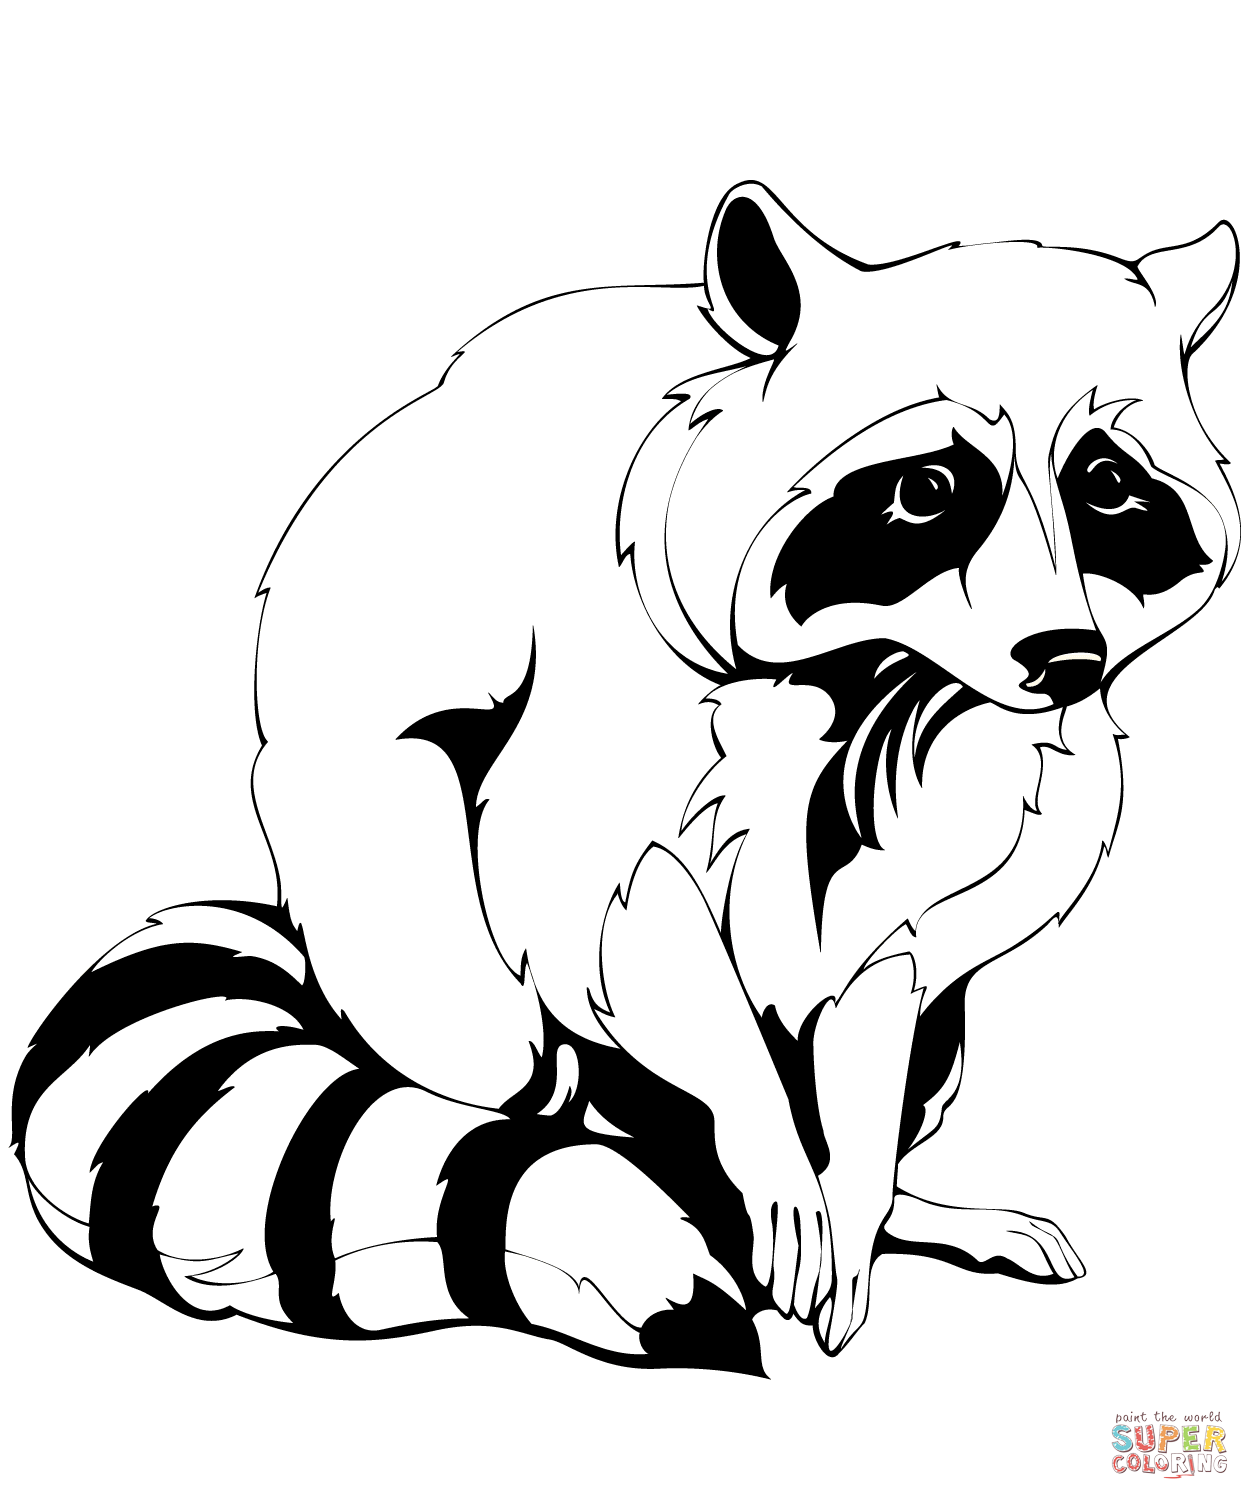 Raccoons Coloring Pages Neo Coloring